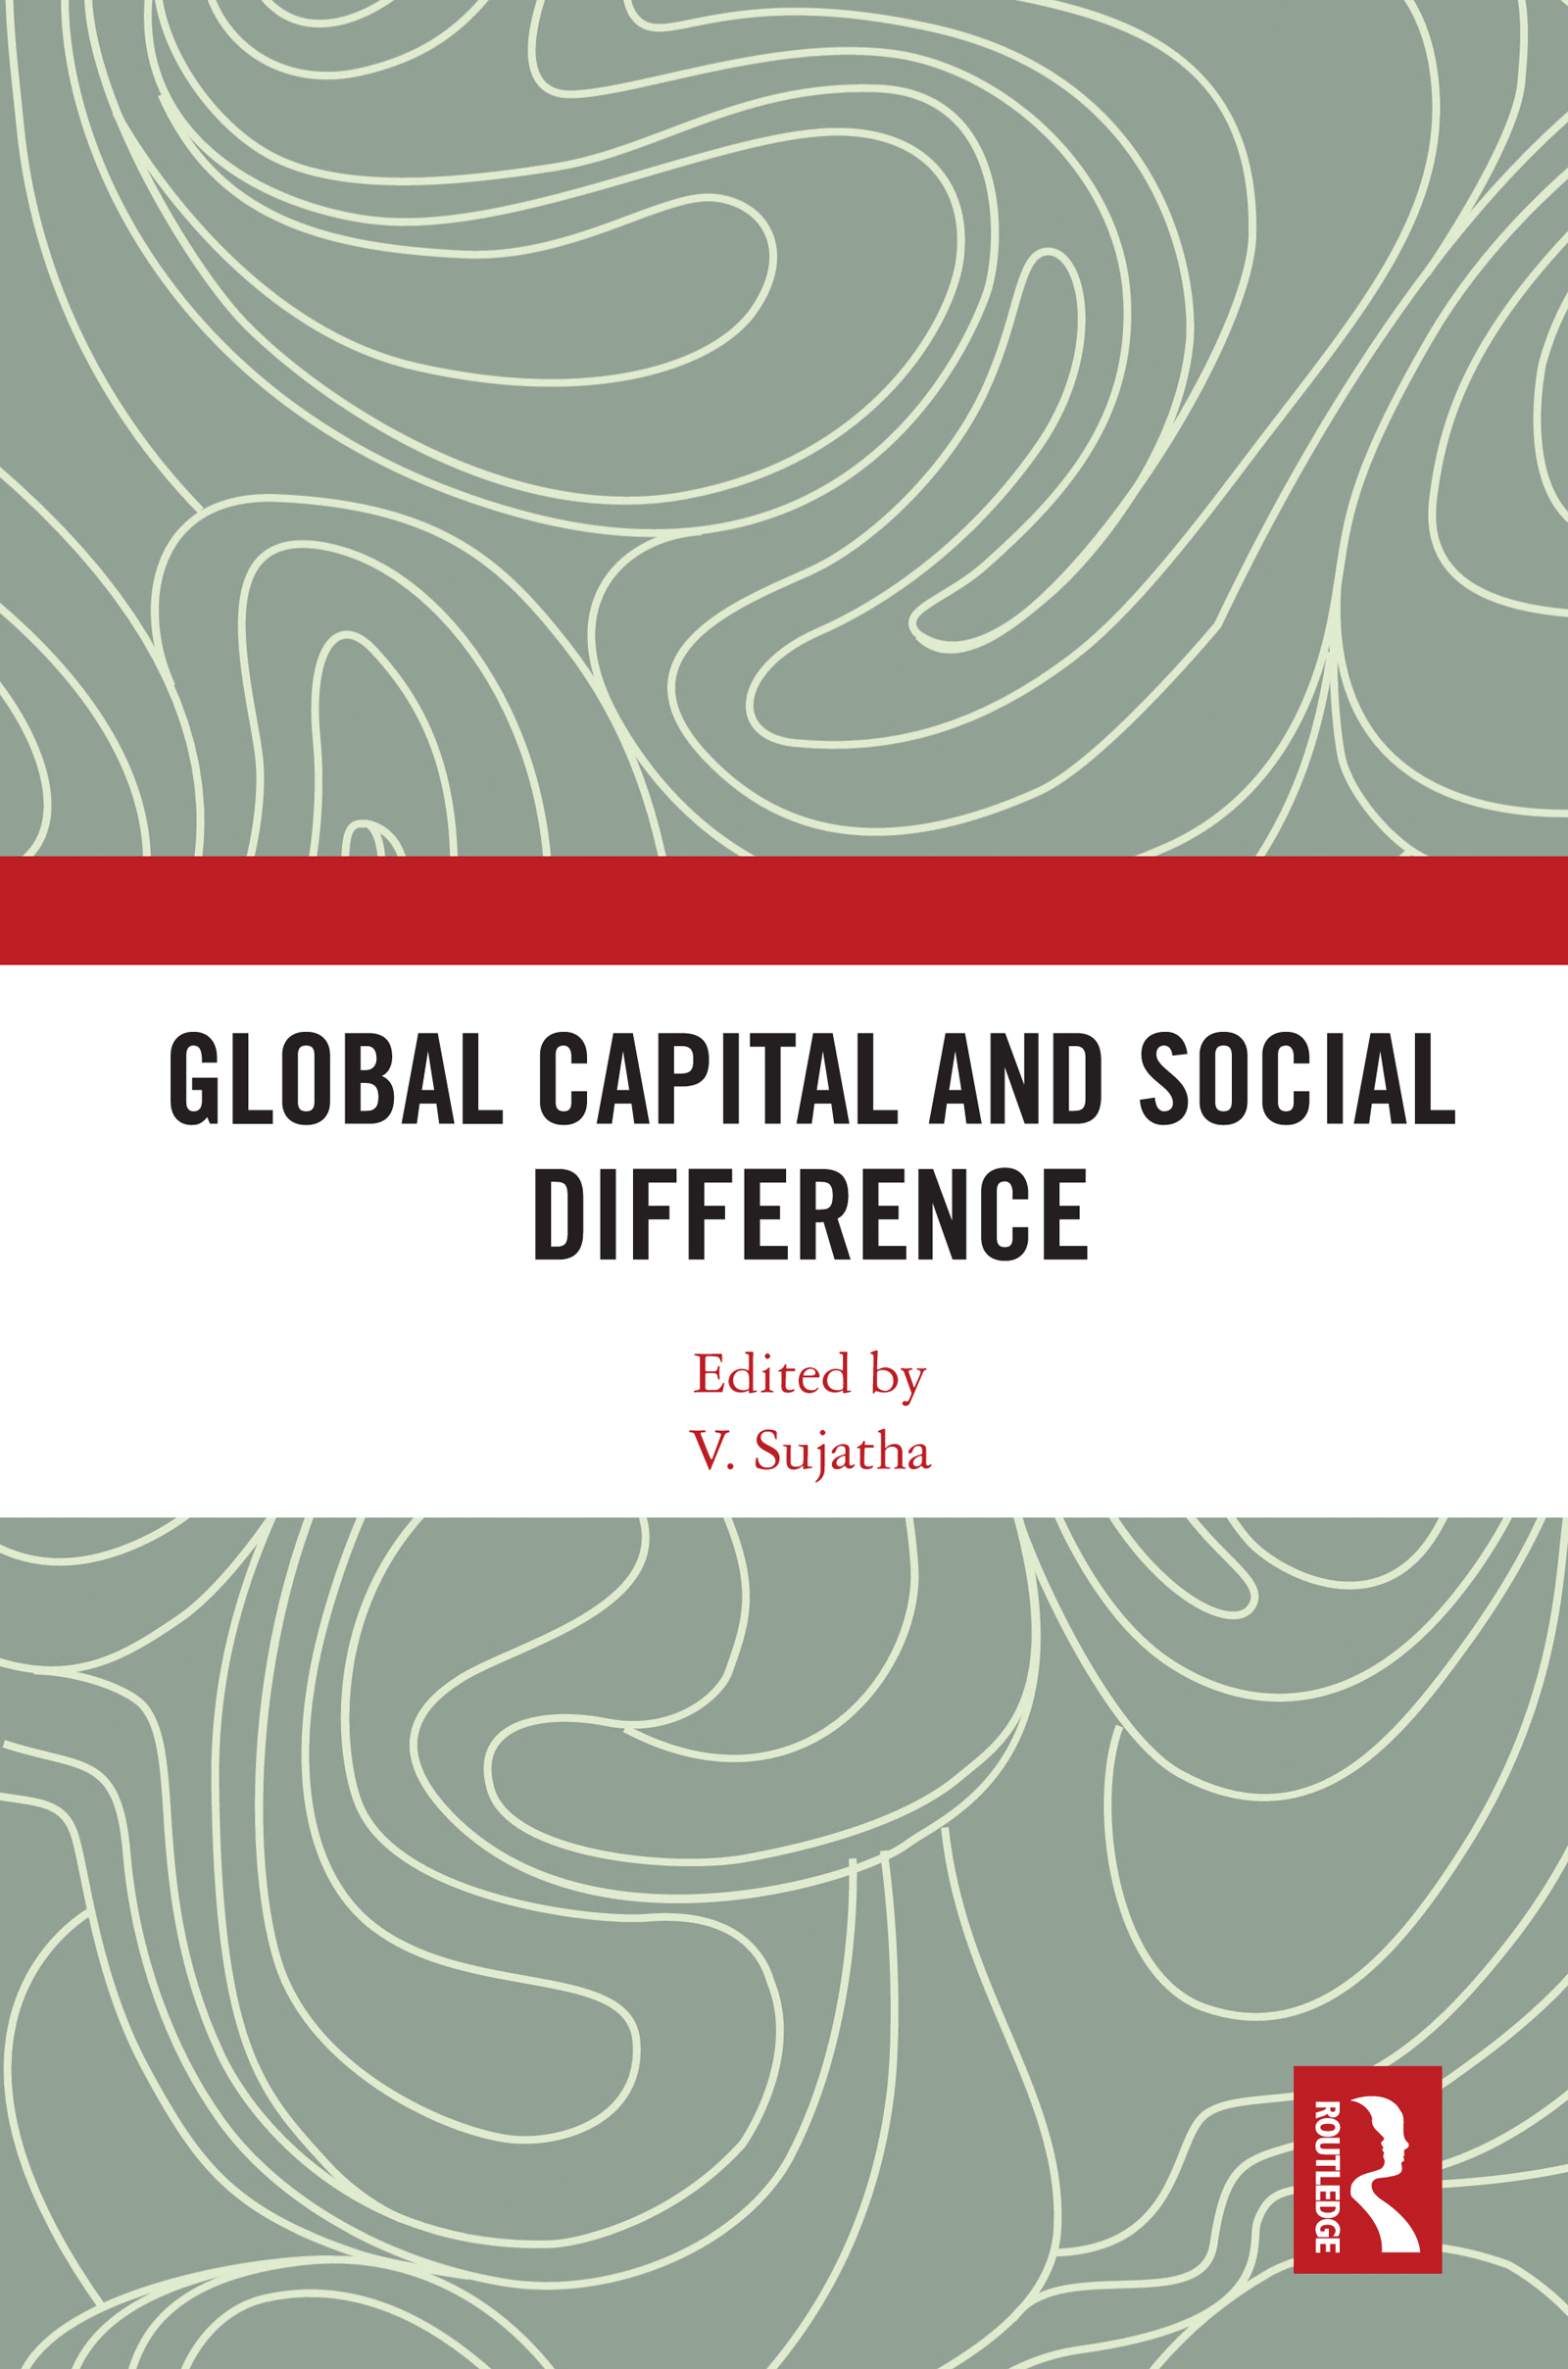 Global Capital and Social Difference